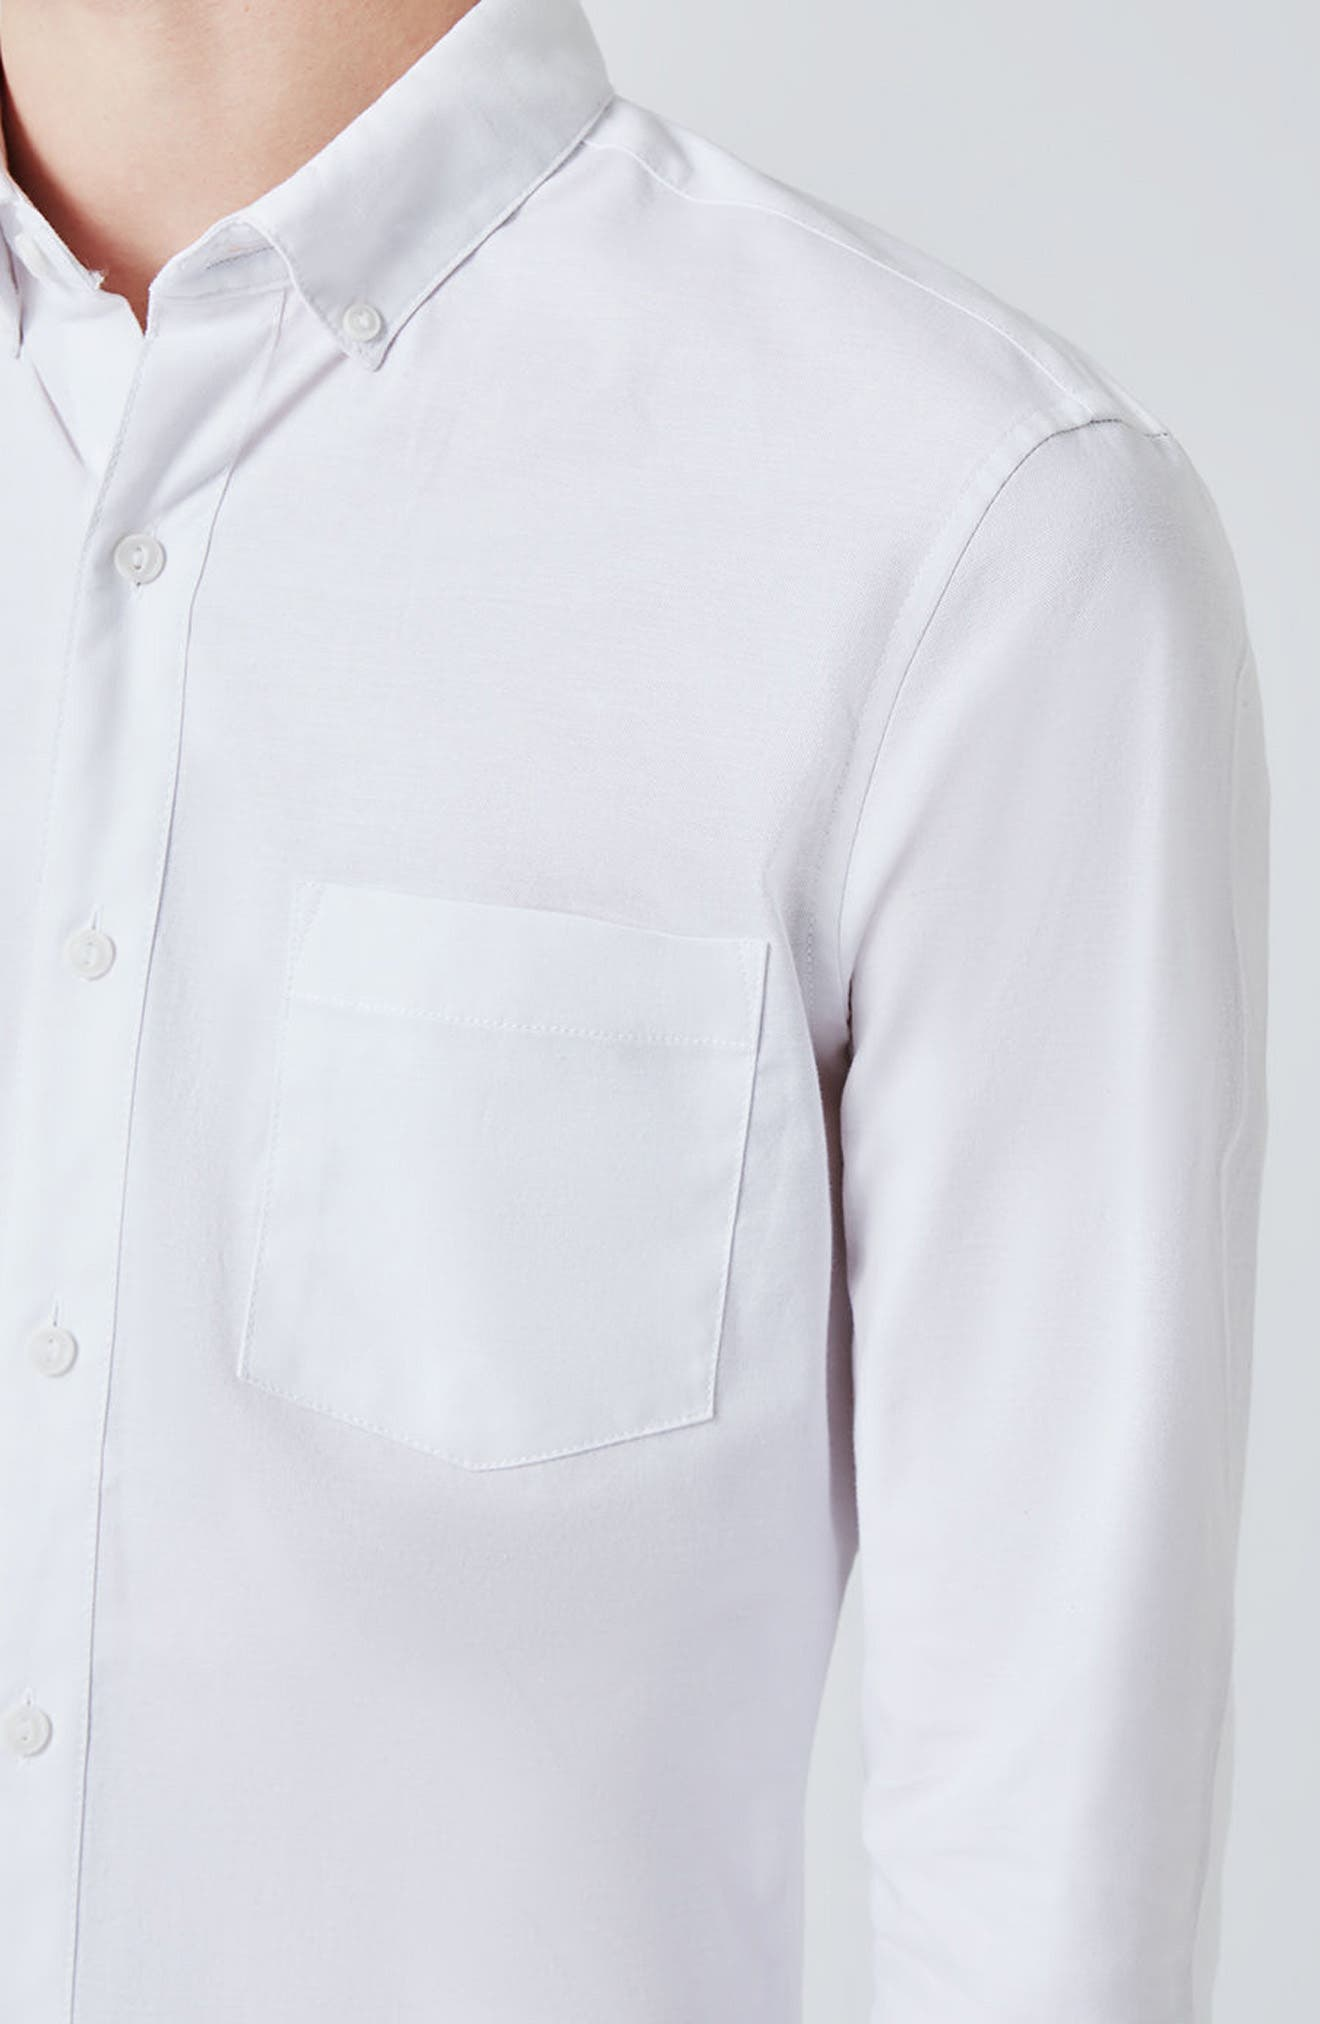 Muscle Fit Oxford Shirt,                             Alternate thumbnail 3, color,                             100